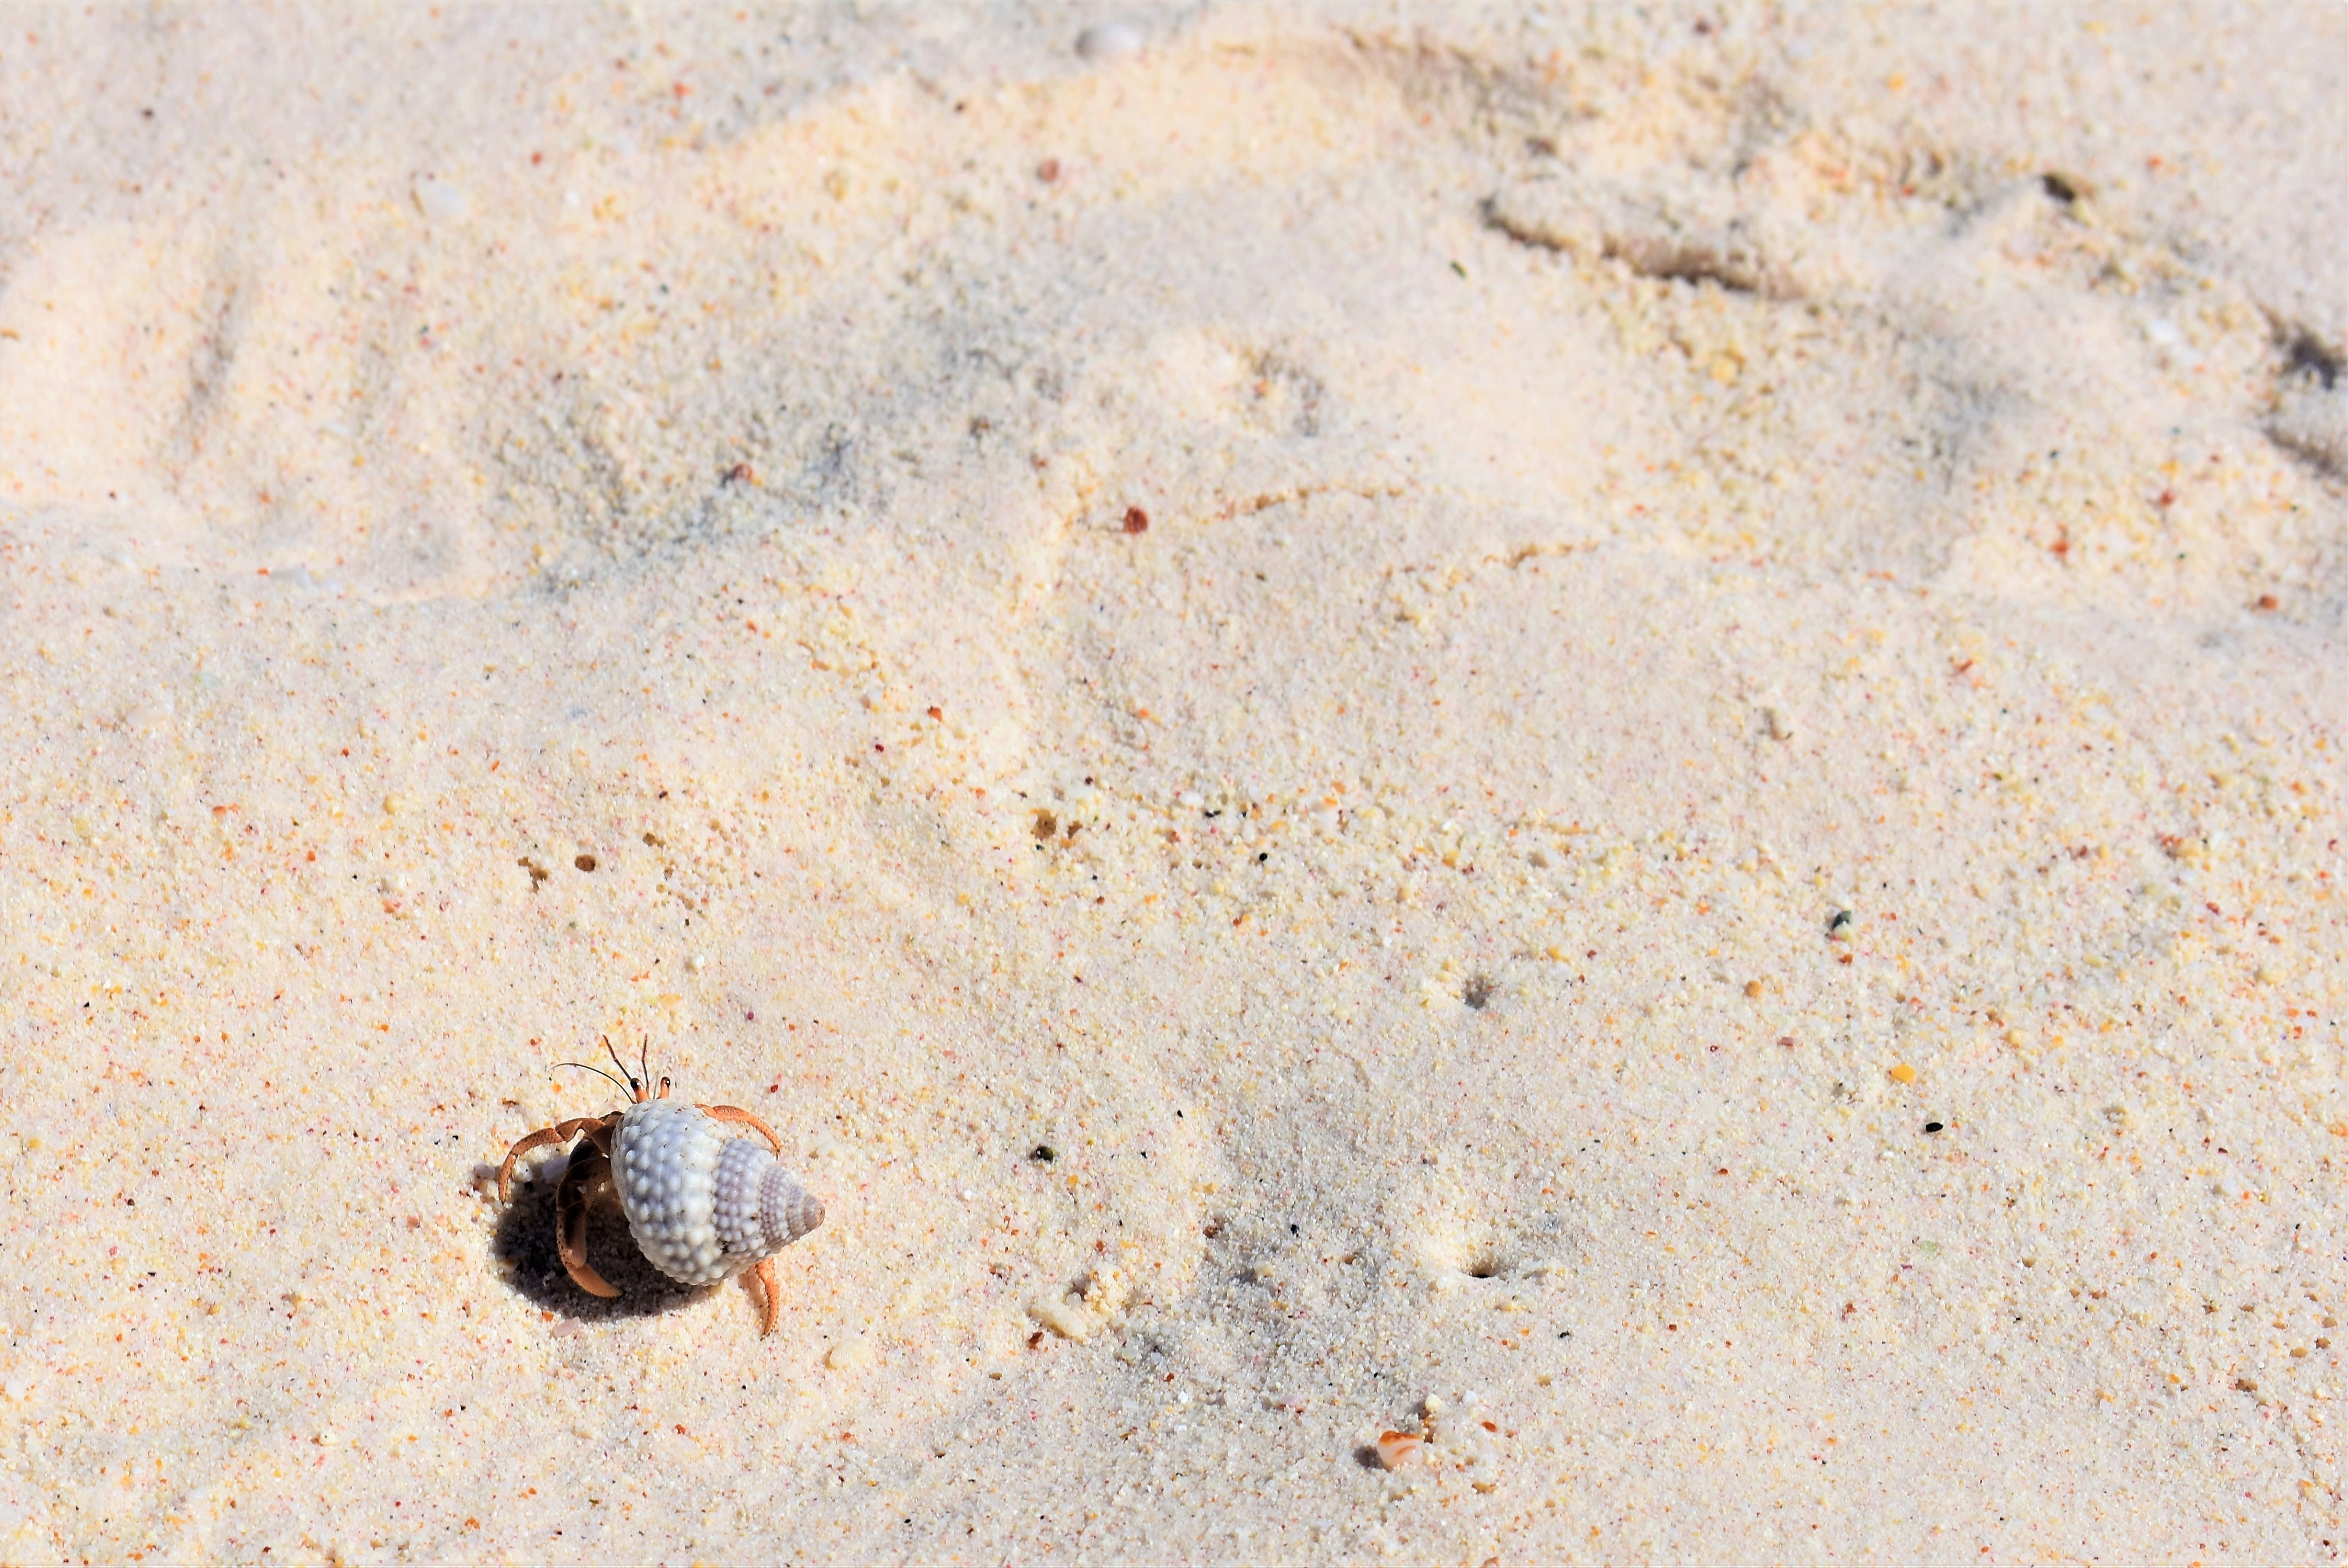 hermit crab walking on sand